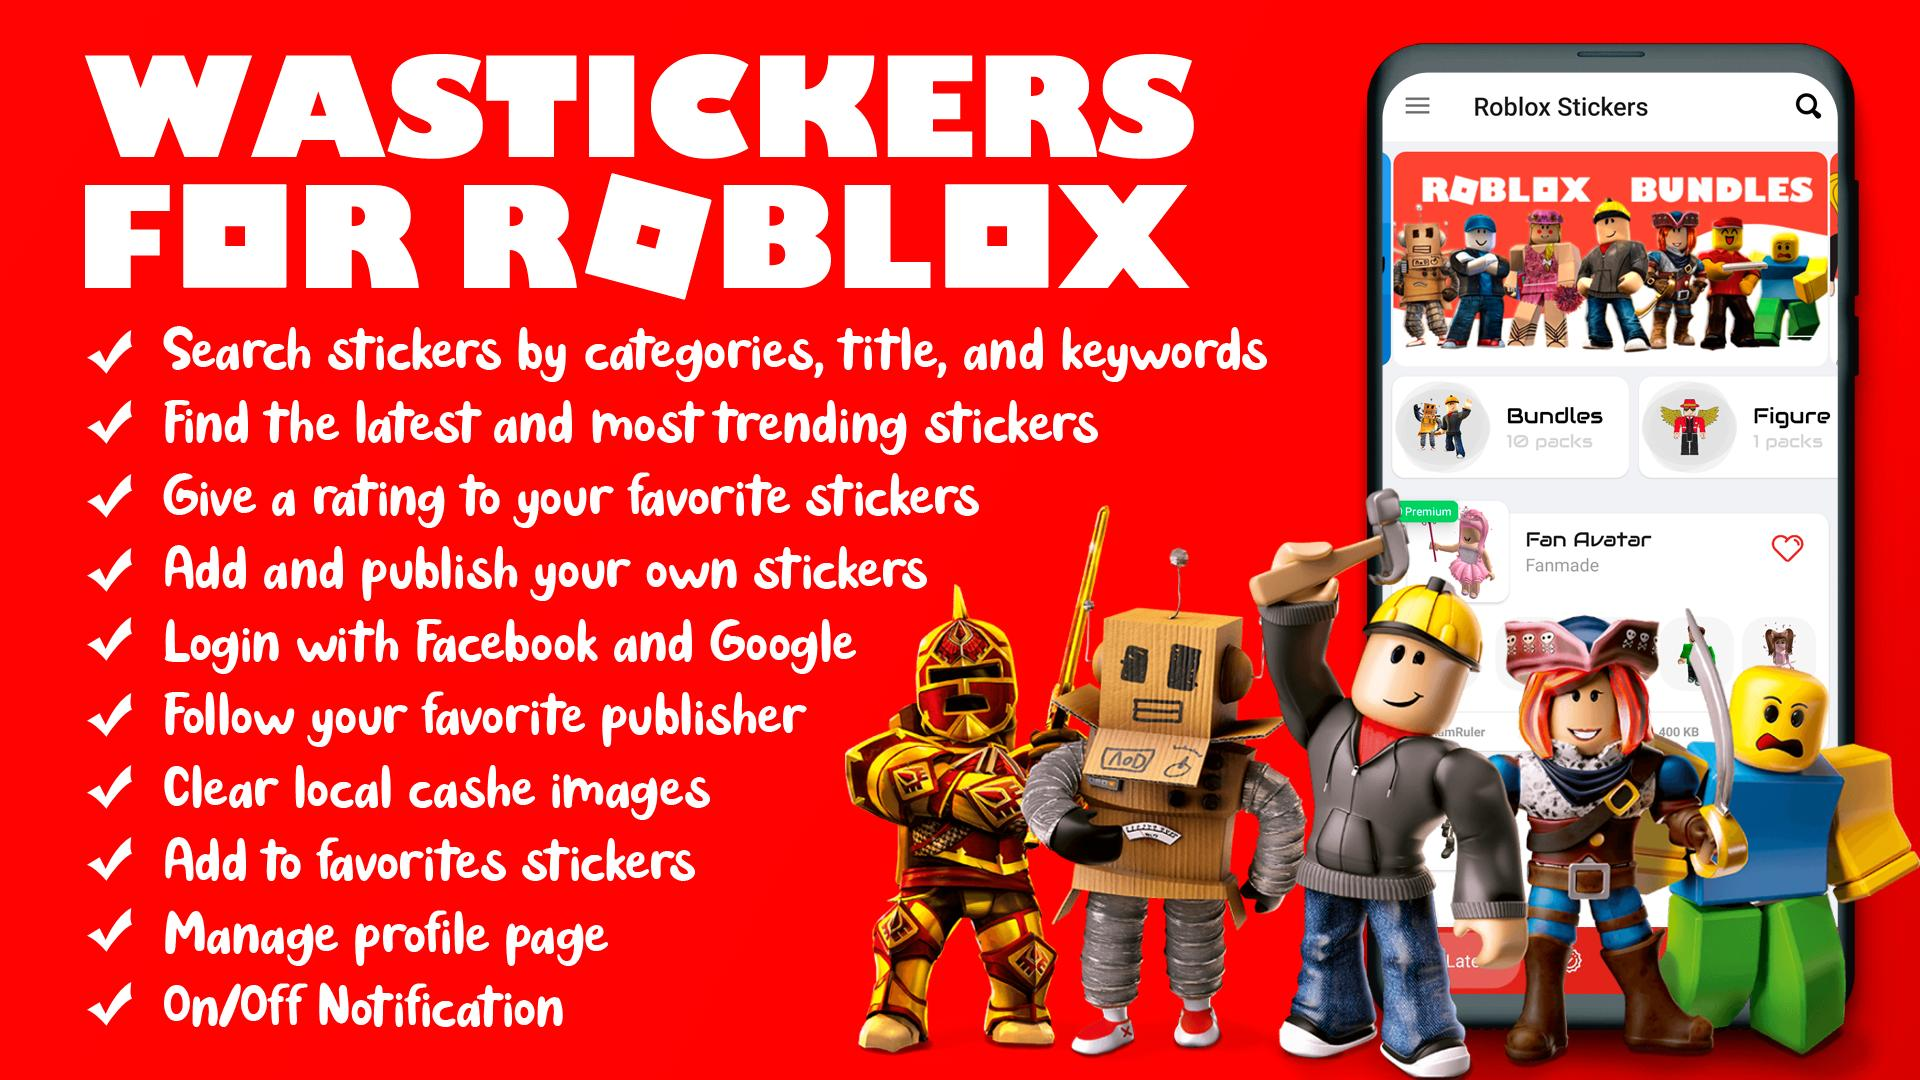 Roblox Poster Wastickers For Roblox For Android Apk Download